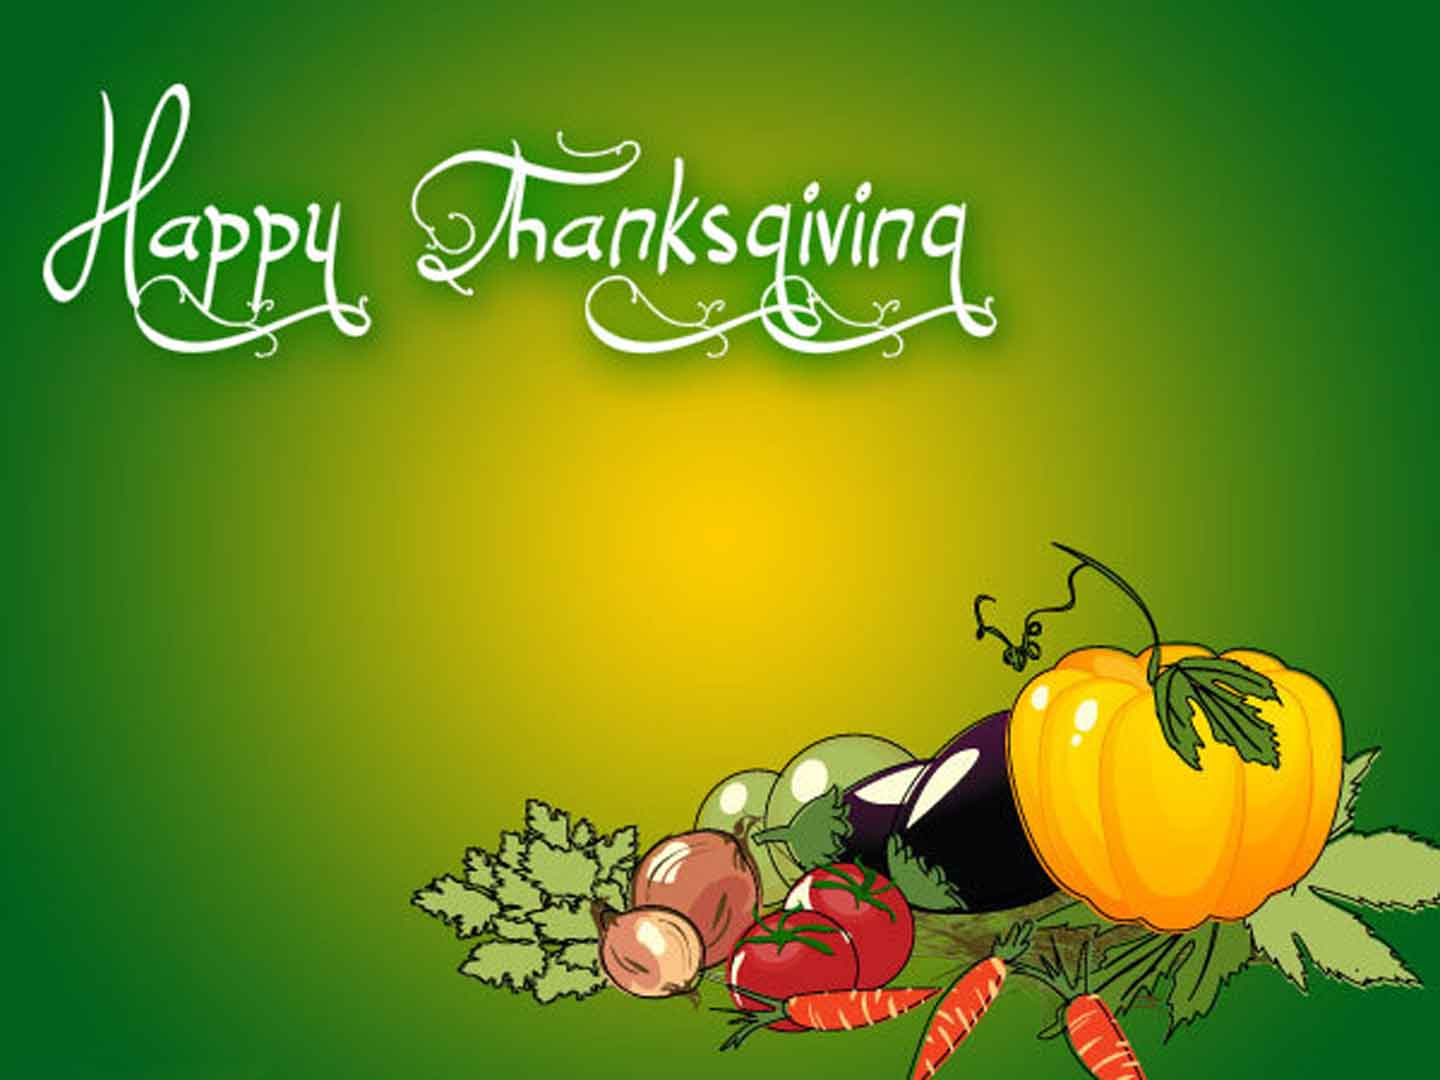 Free Wallpapers Happy Thanksgiving Green Wallpapers 1440x1080PX